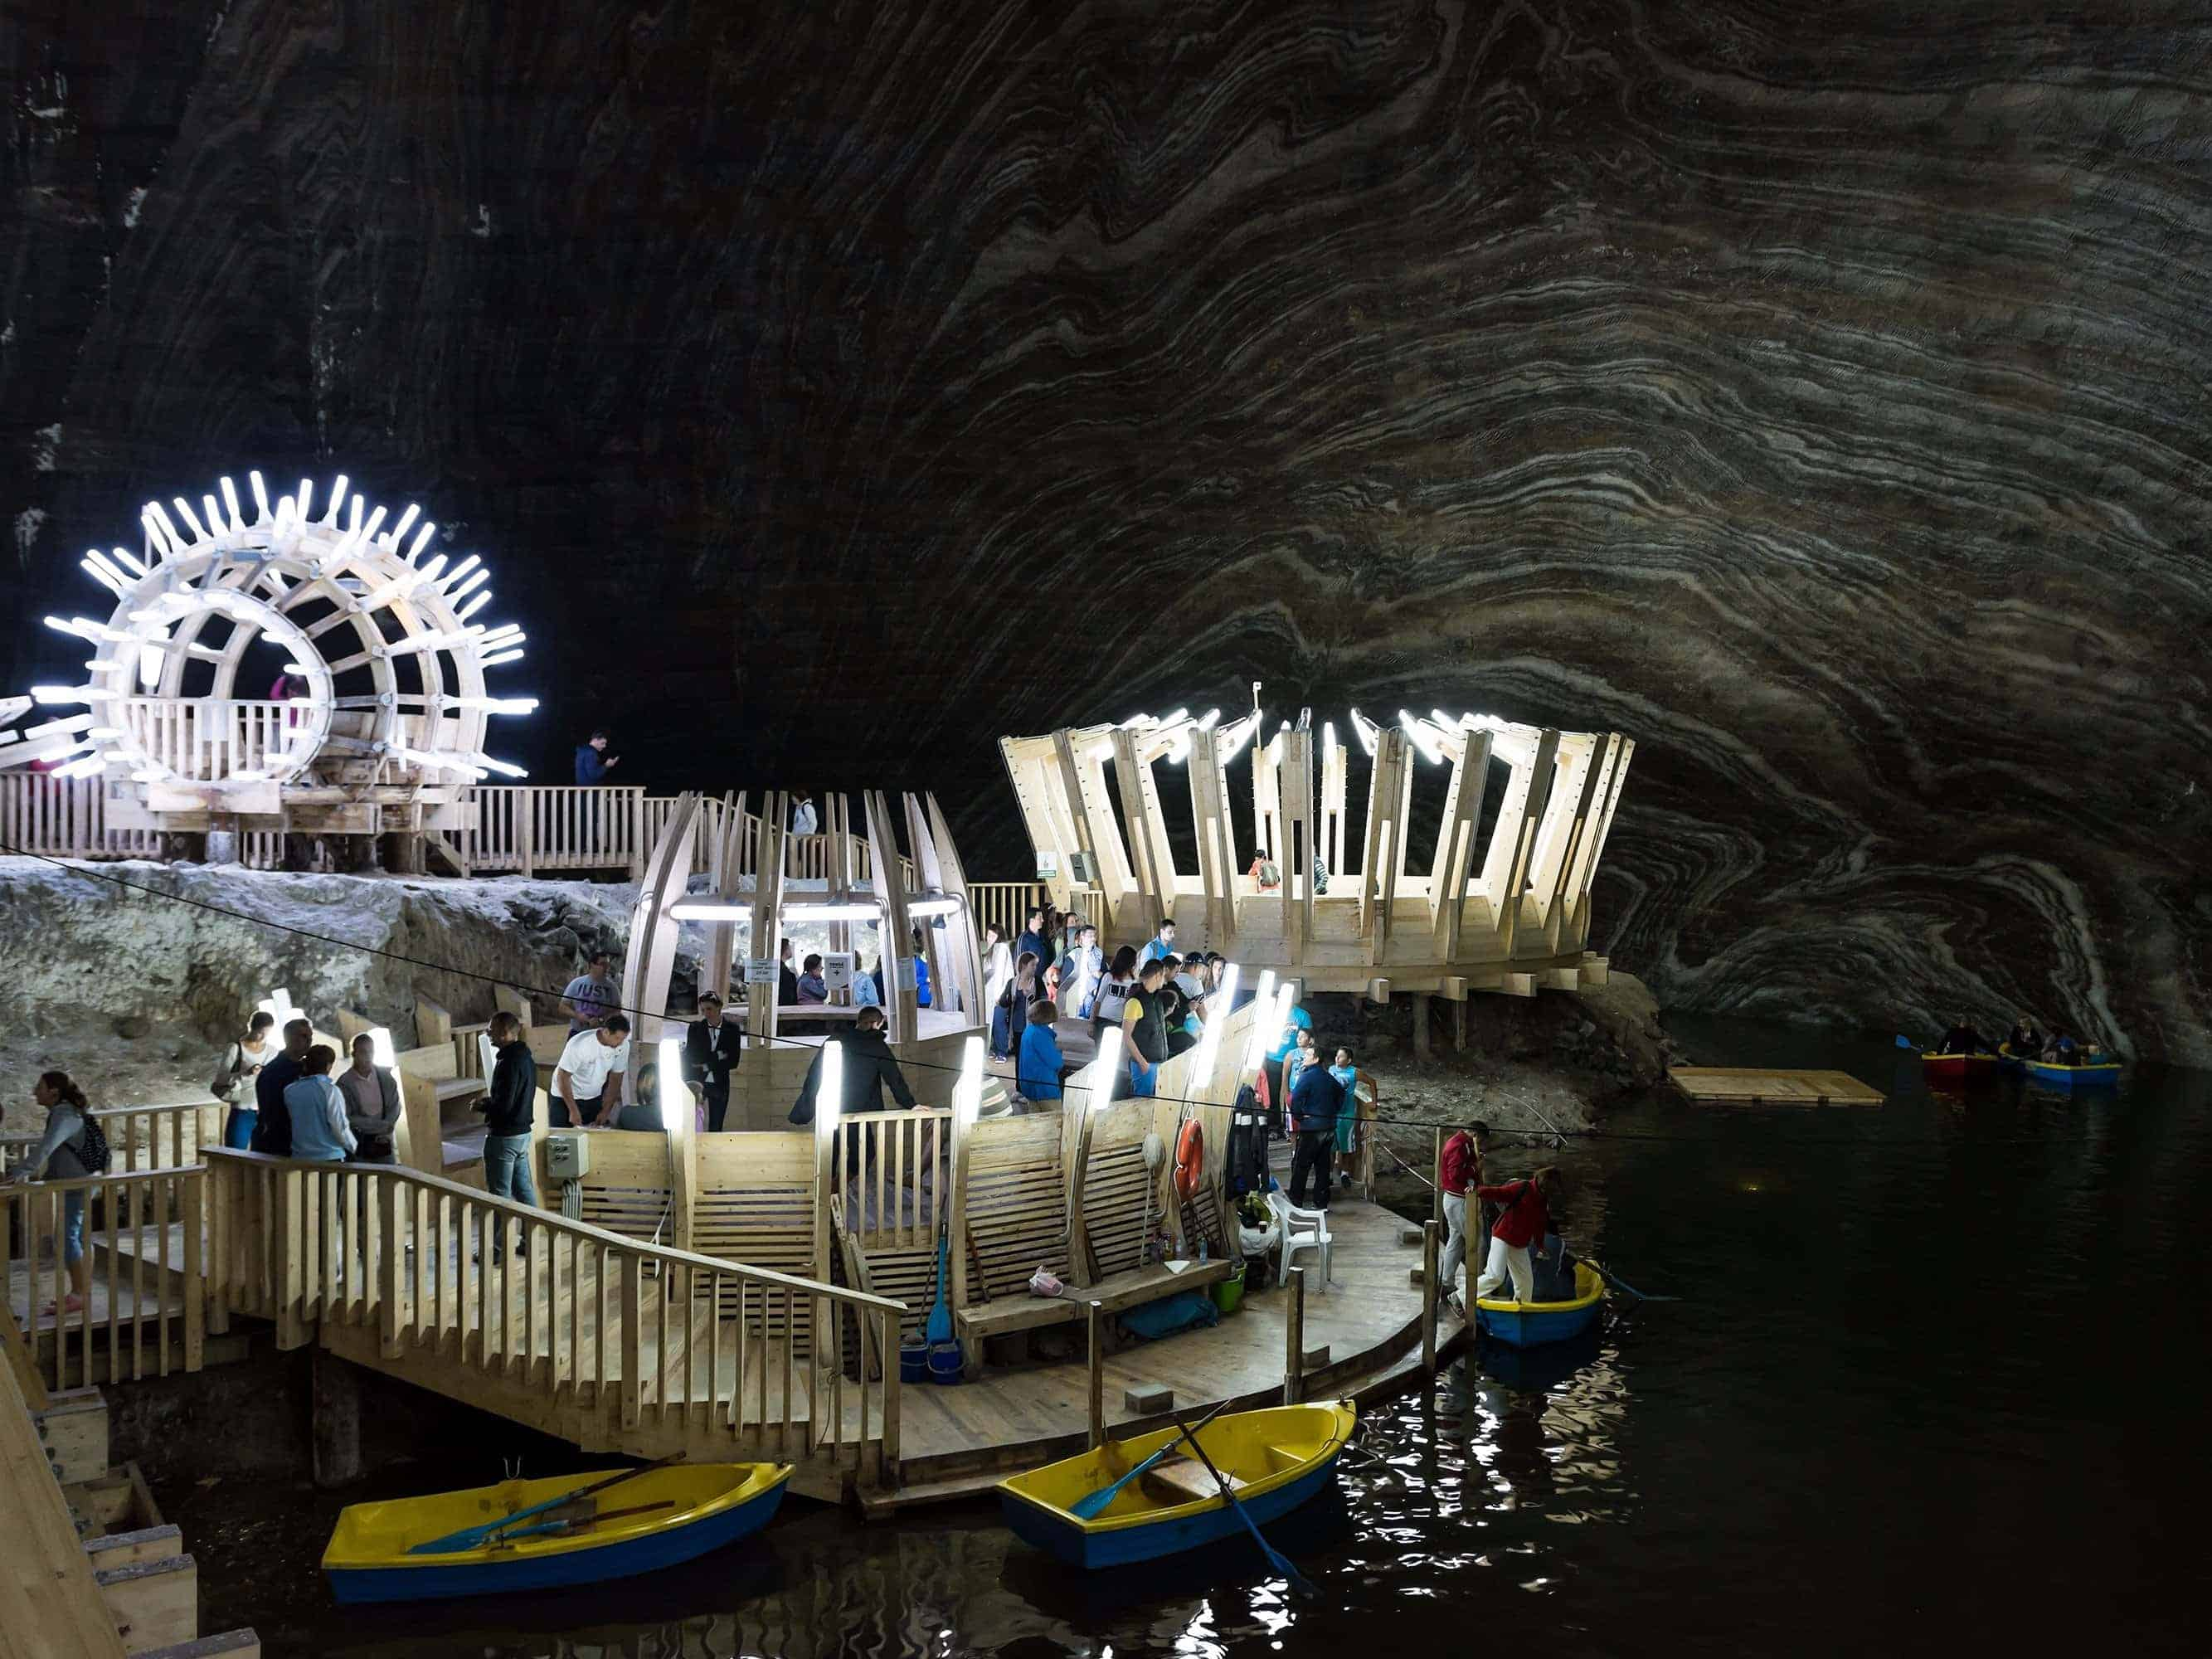 Explore the caverns of the salt mine on your very own paddle boat.